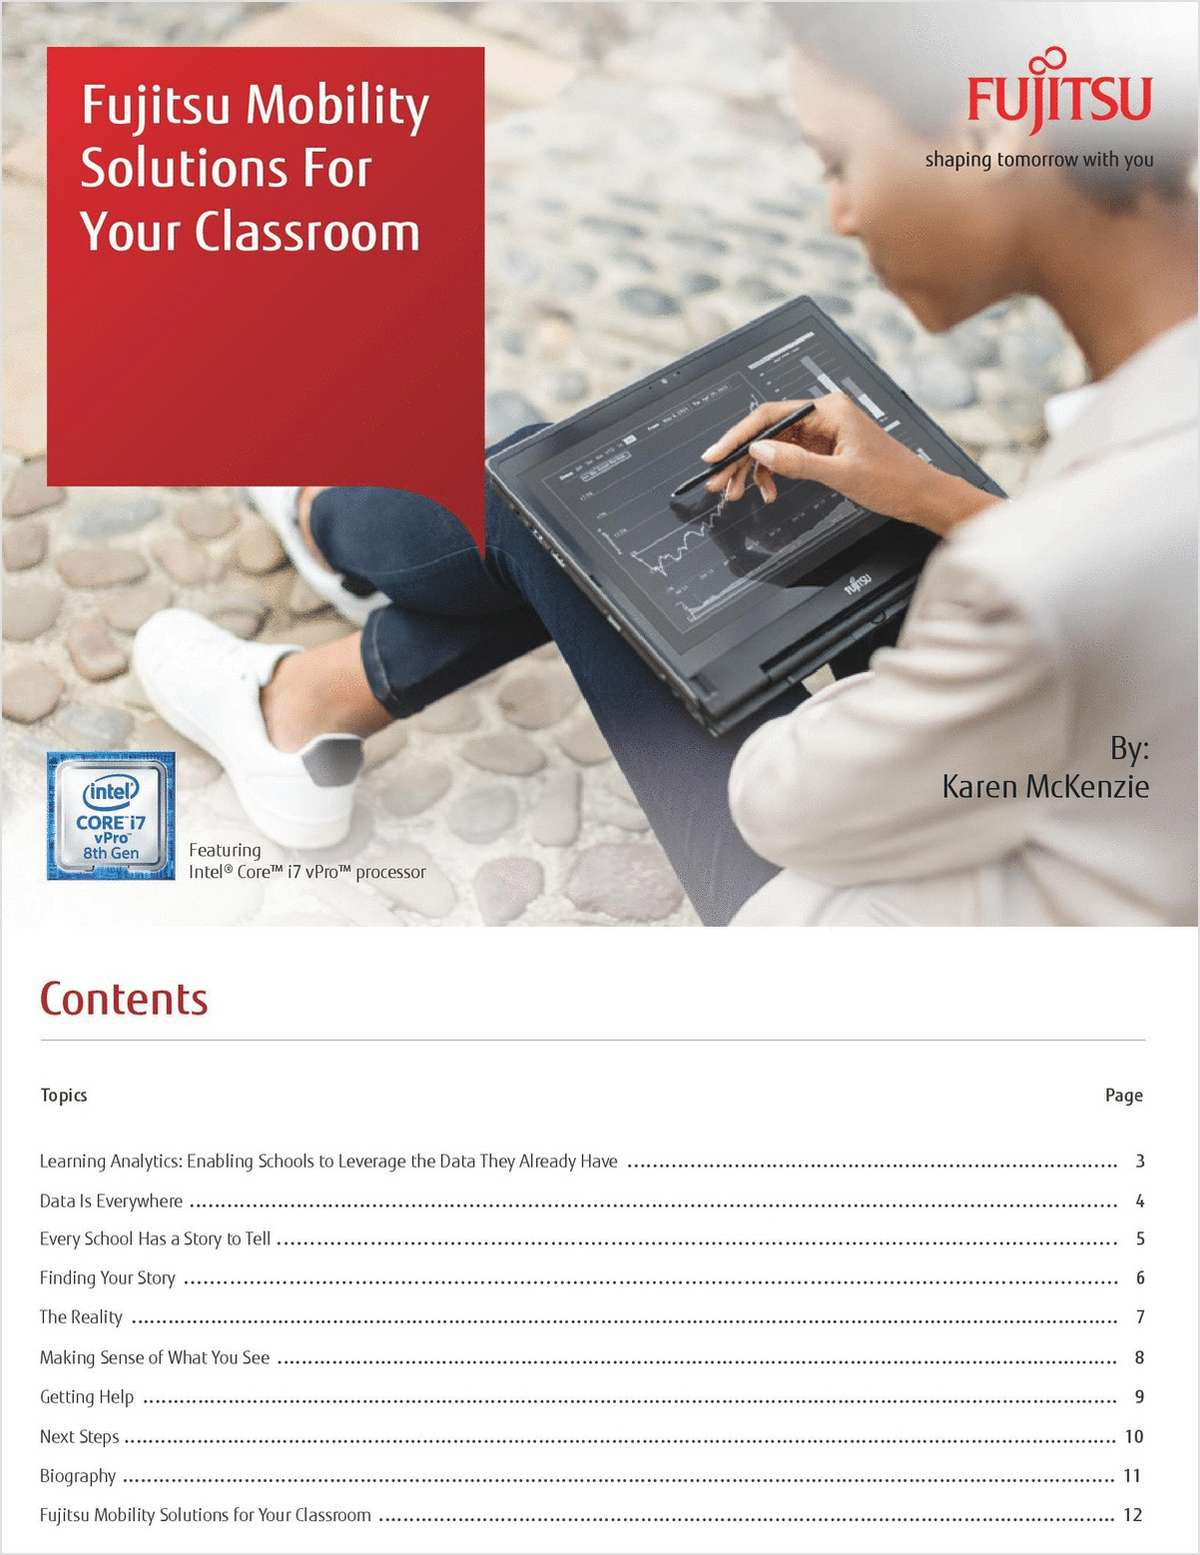 Expand your Education Horizons with Data Analytics